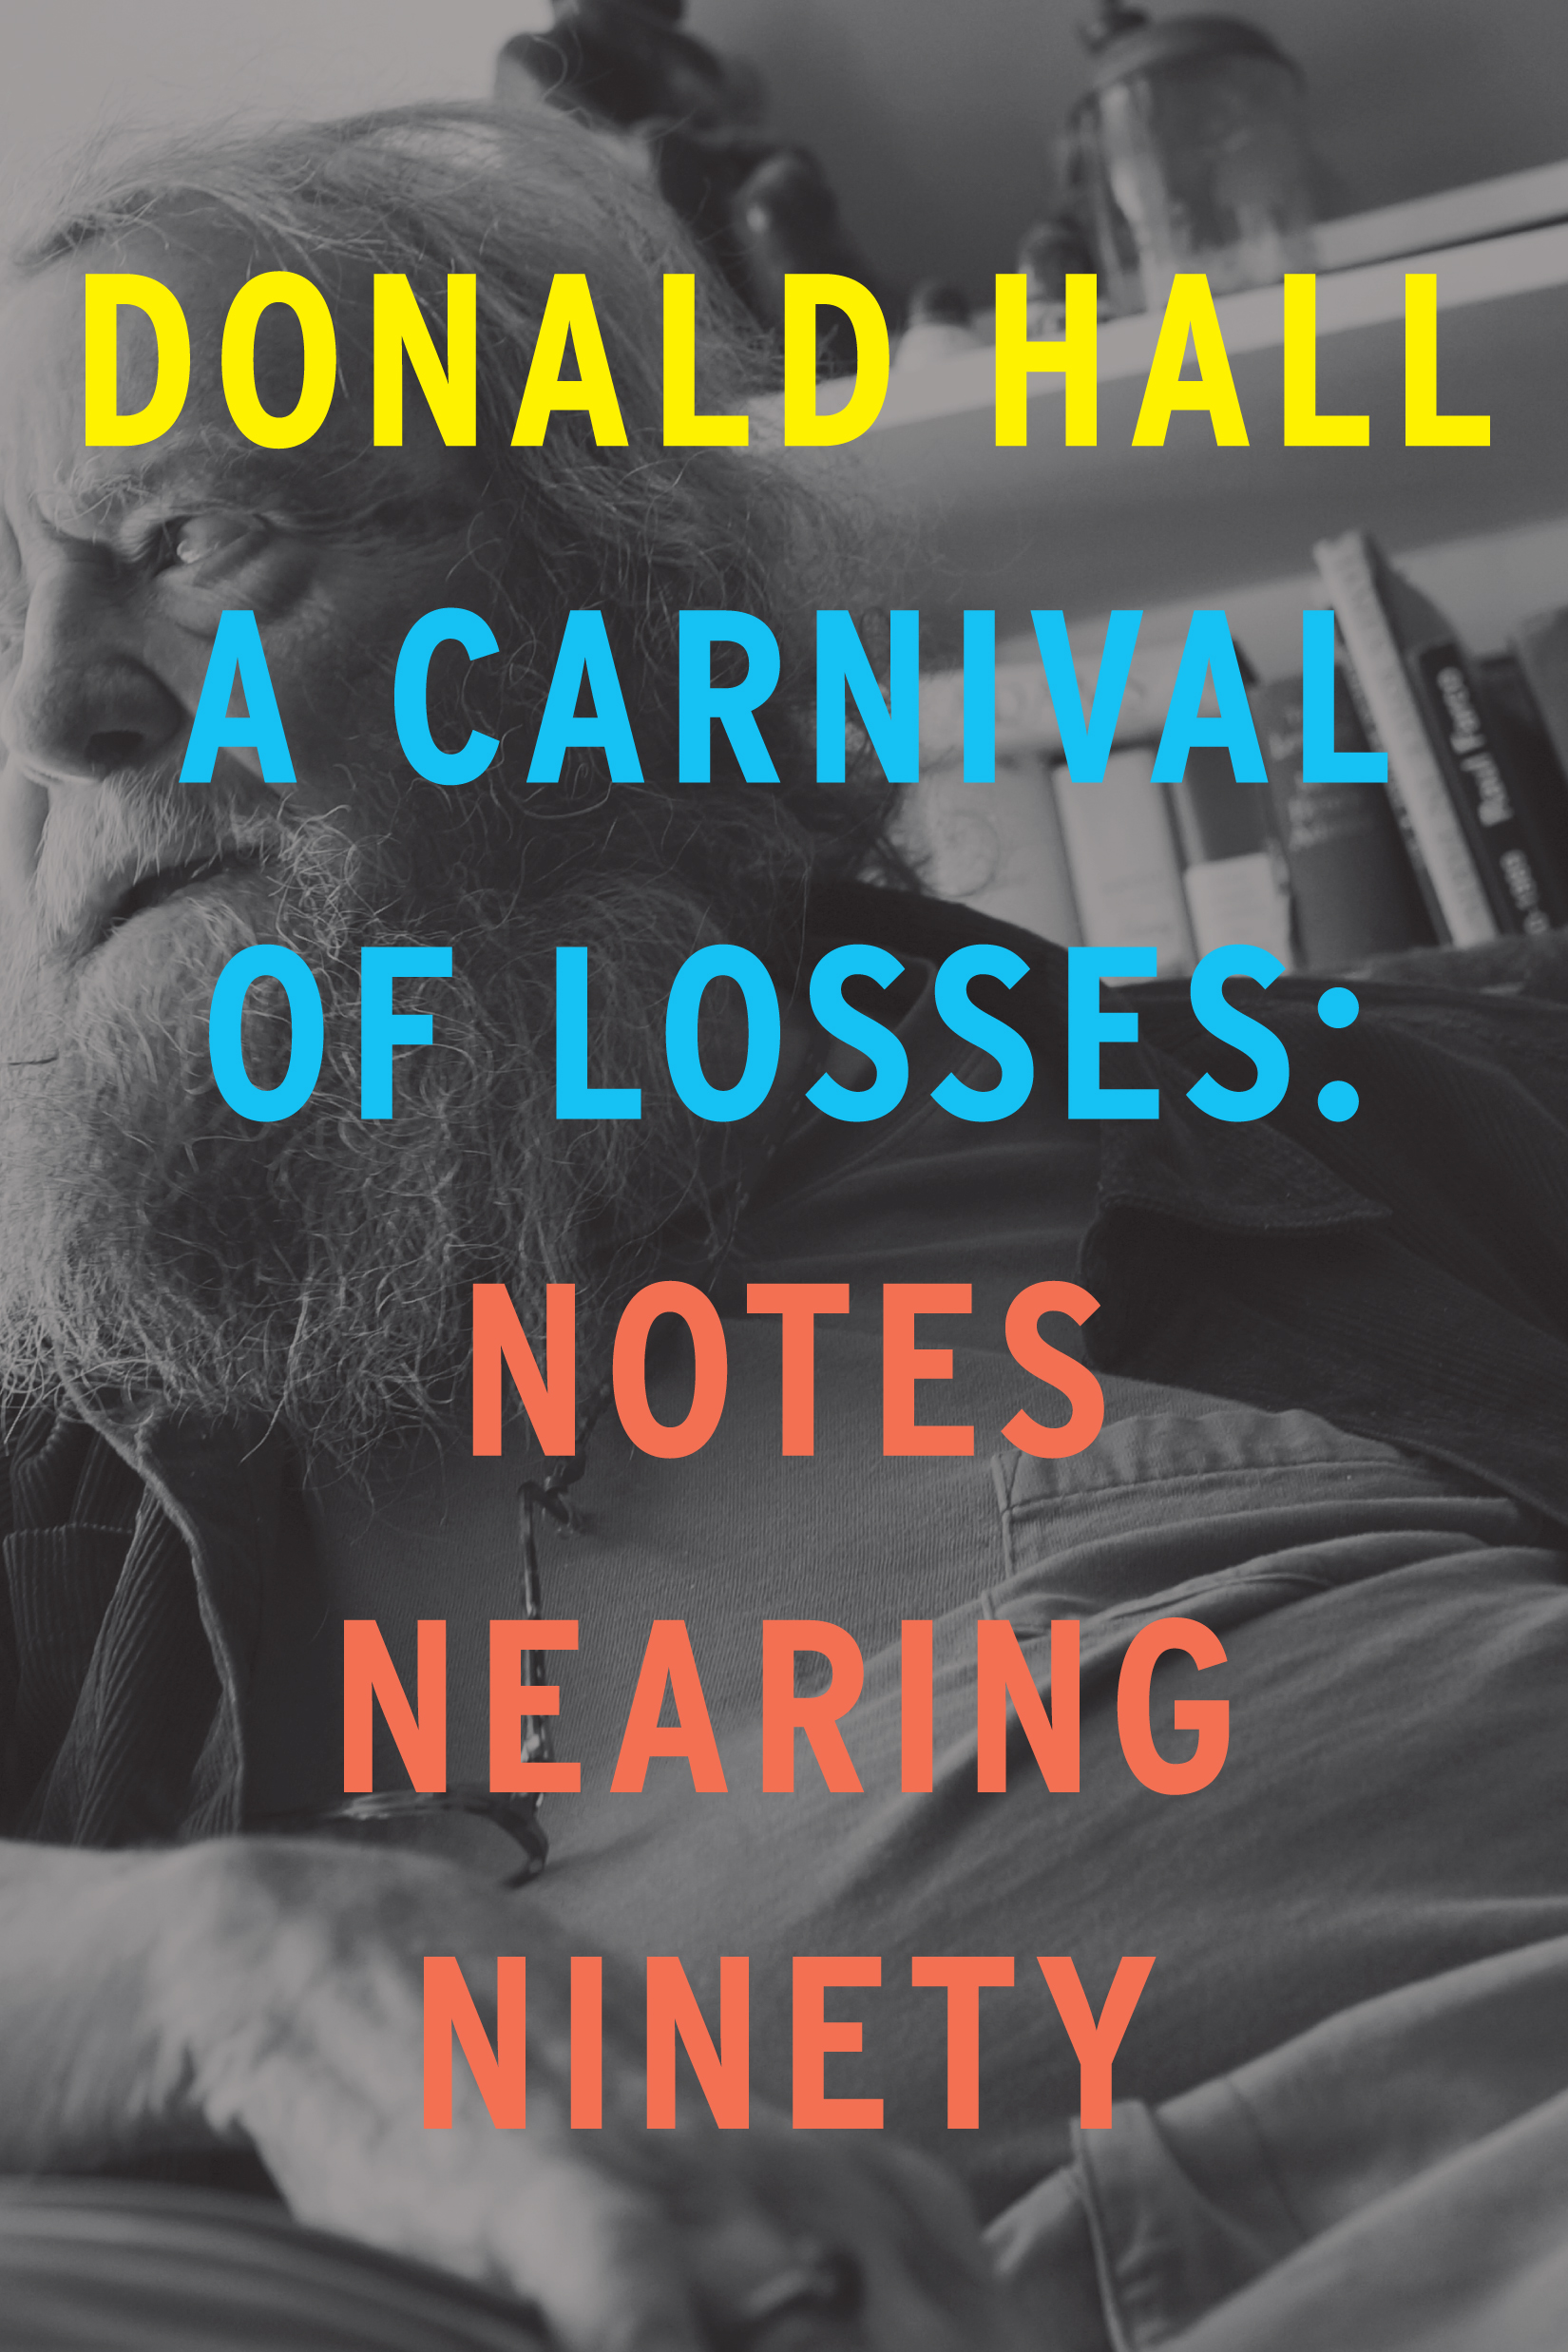 Donald Hall reflects on aging in 'Carnival of Losses' - The